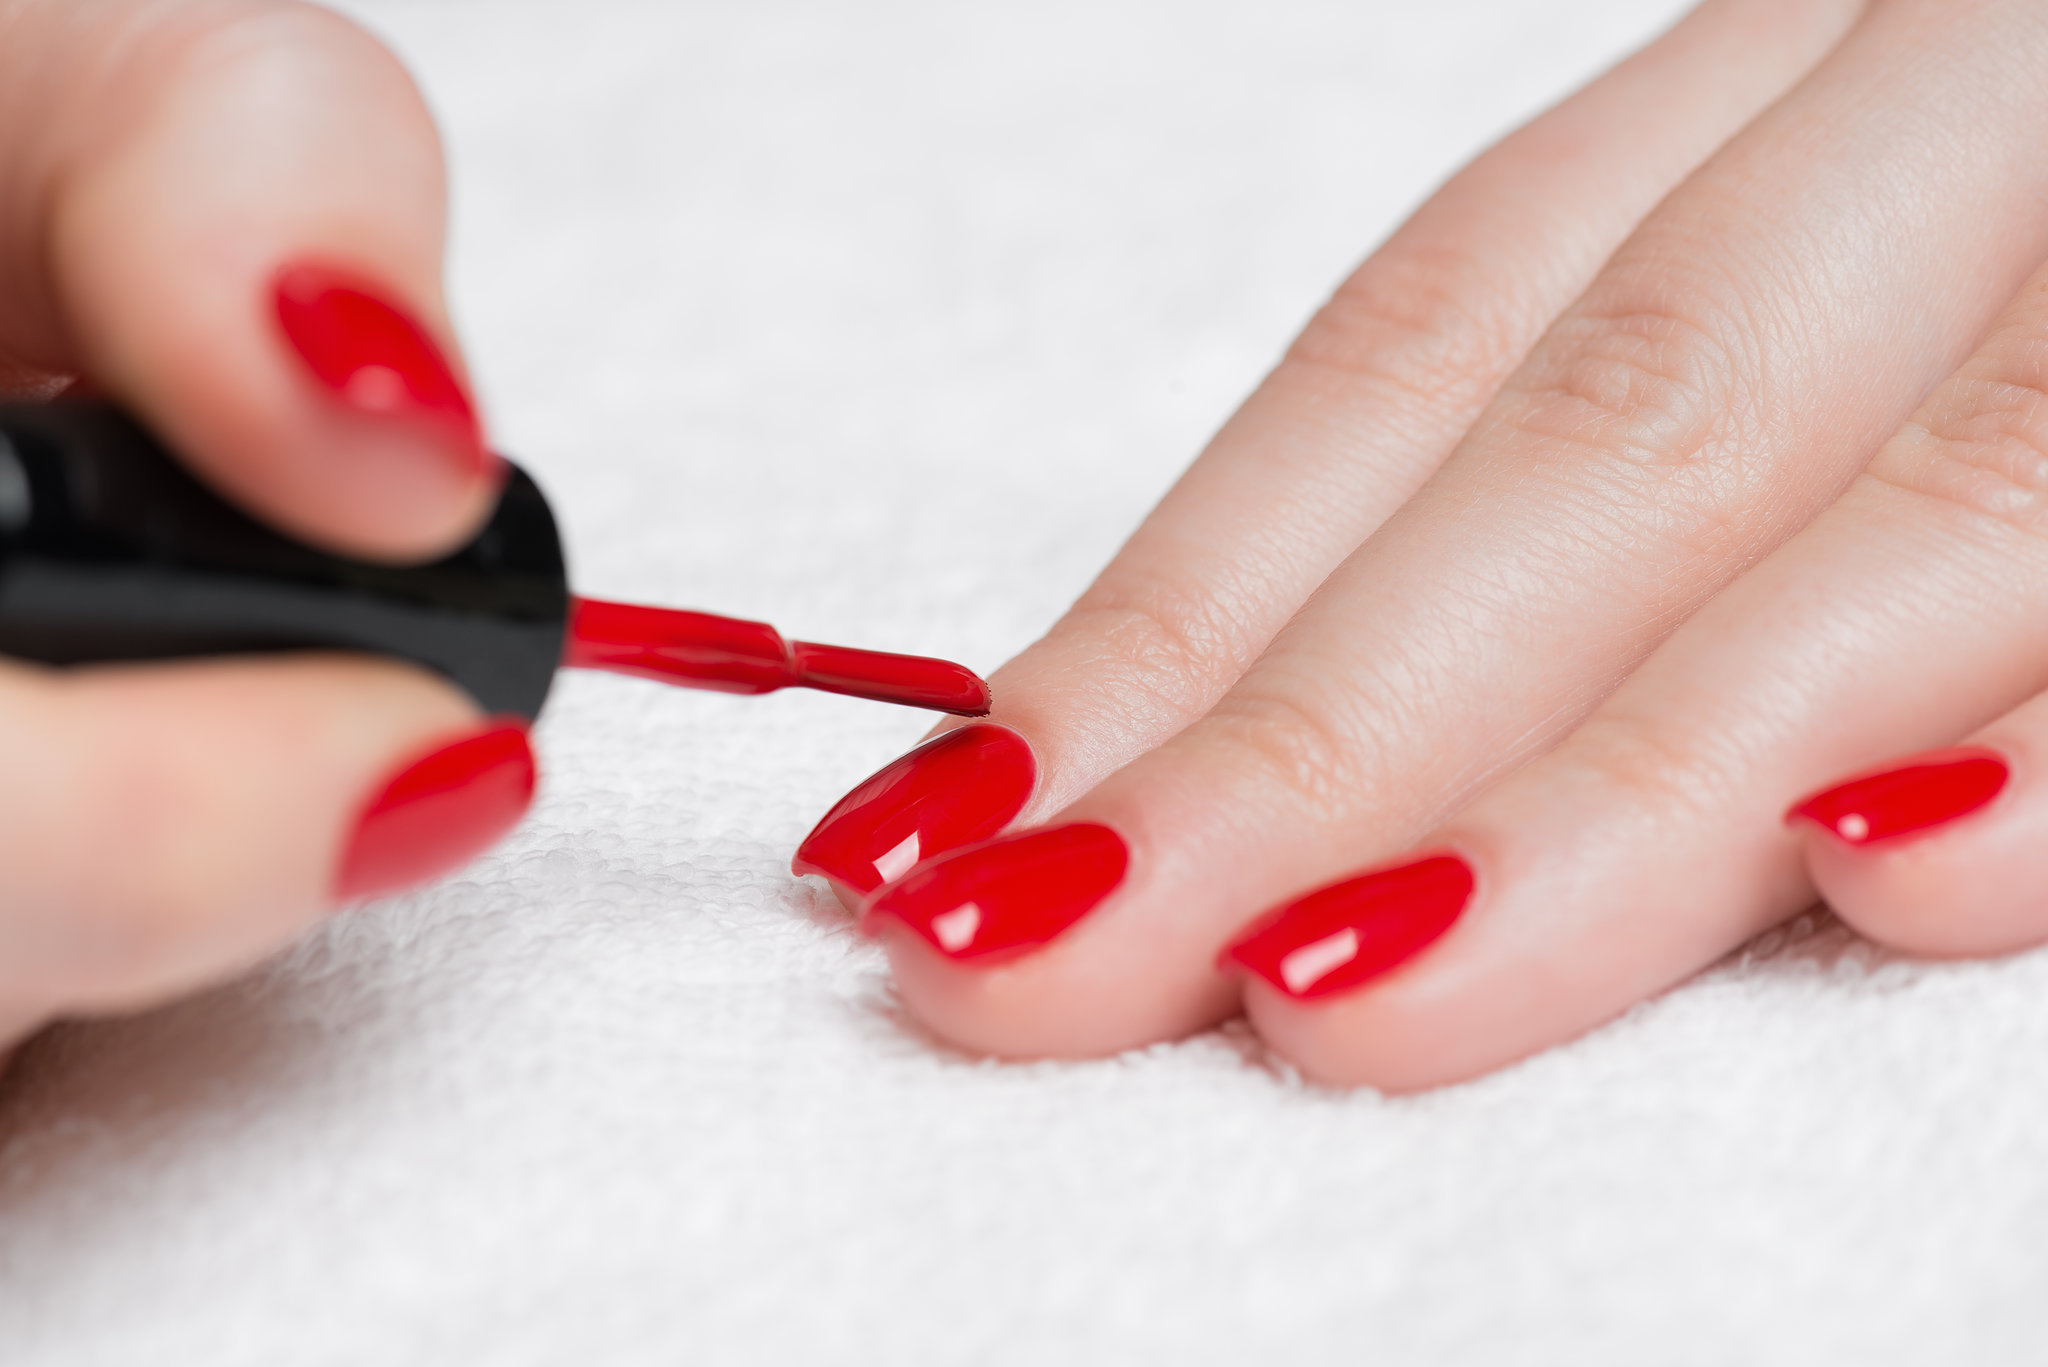 Gently massage the nail polish spots. Gently pull on the nail polish, running your fingernails down the strands of hair. If the polish begins to come out, continue this process until you dislodge as much of the polish as possible. If some nail polish remains in your child's hair, proceed to the next step.